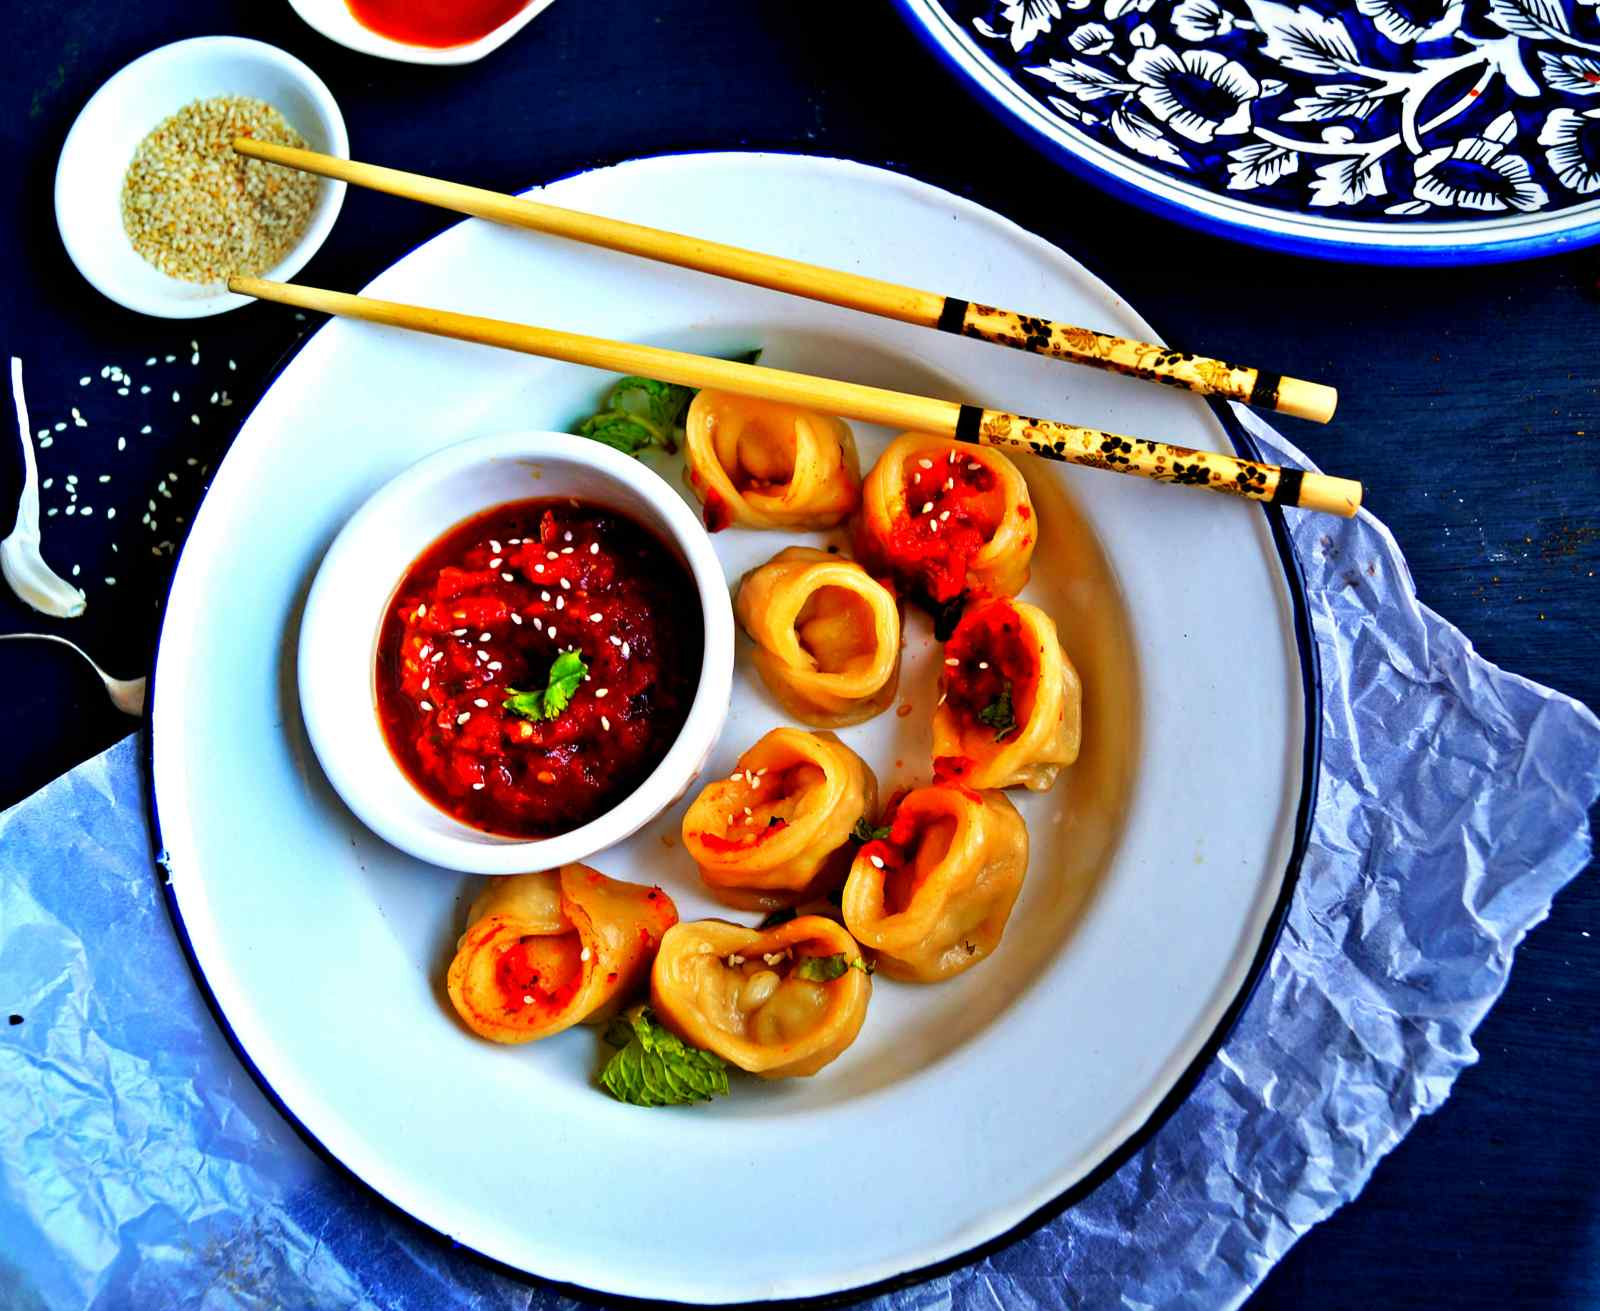 Chicken Dimsums Recipe - Steamed Chicken Dumplings